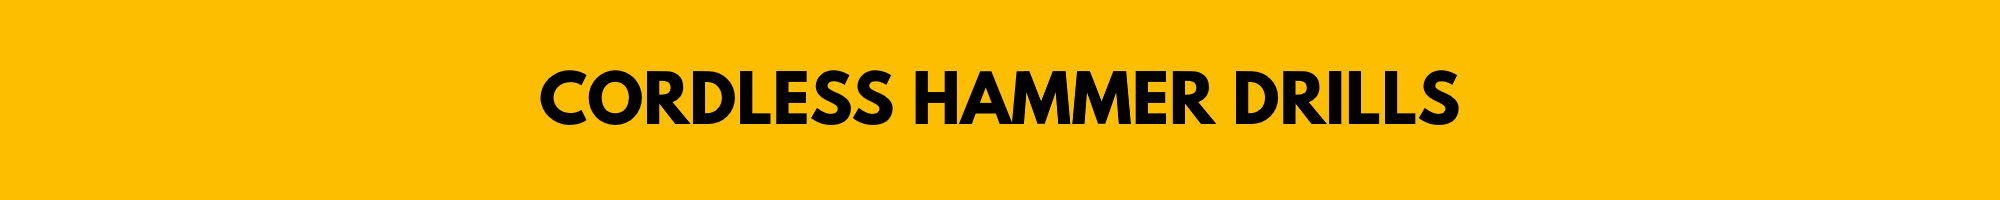 HAMMER DRILLS.png